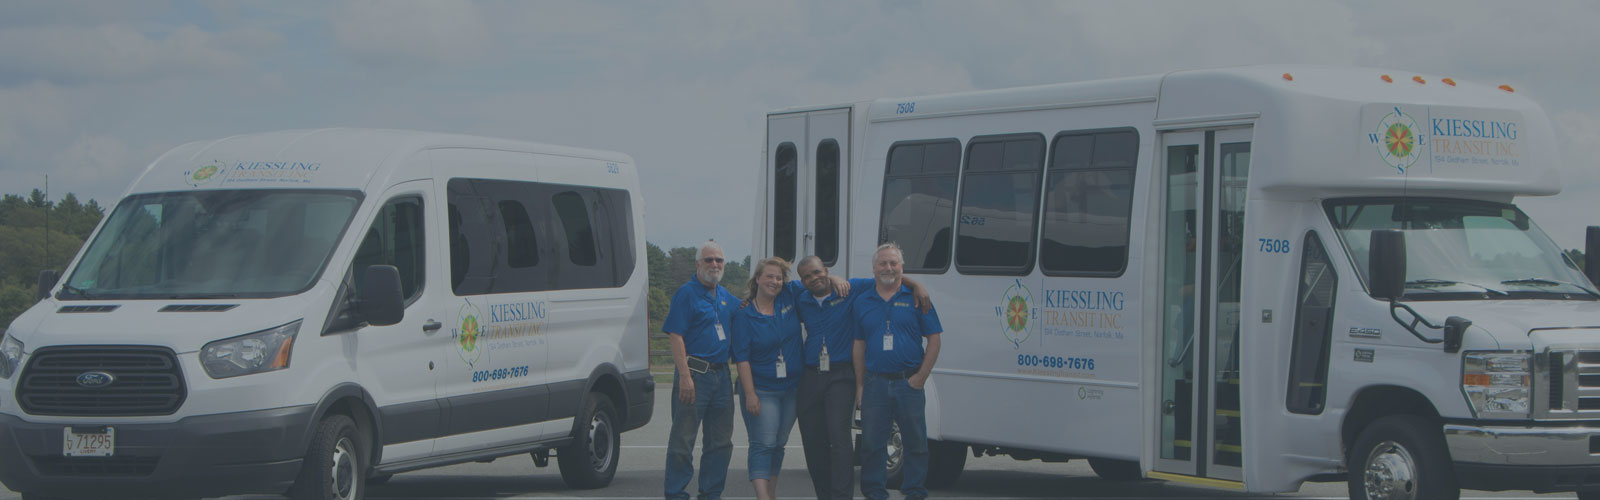 Kiessling Transit Operations Team Standing in Front of KTI Vehicles - About Us Title Background